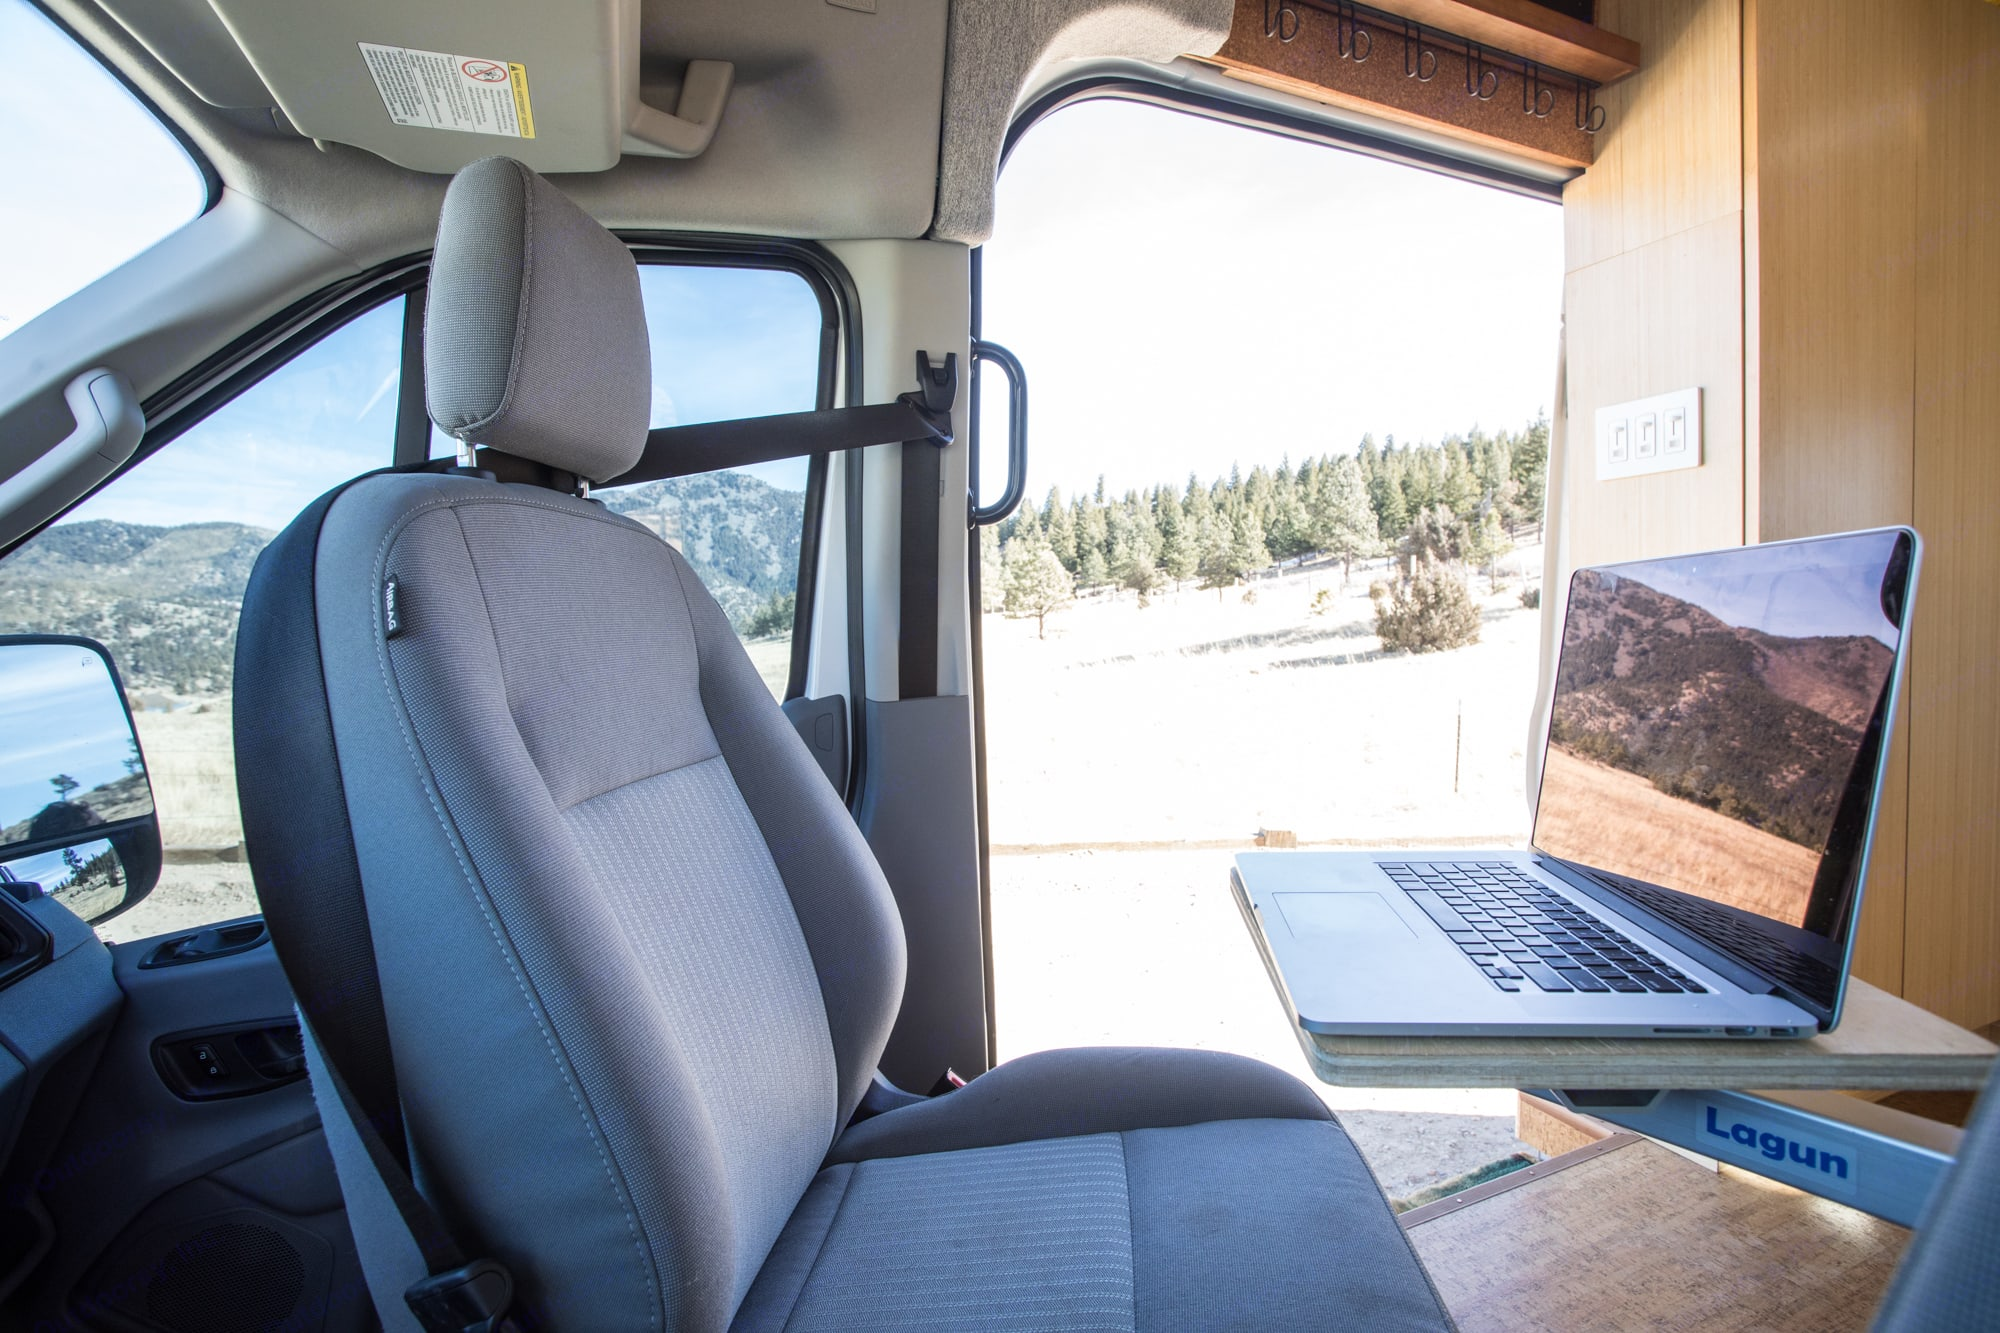 LAP TOP FRIENDLY VAN- while taking in the view out the side door. Ford Transit 2018